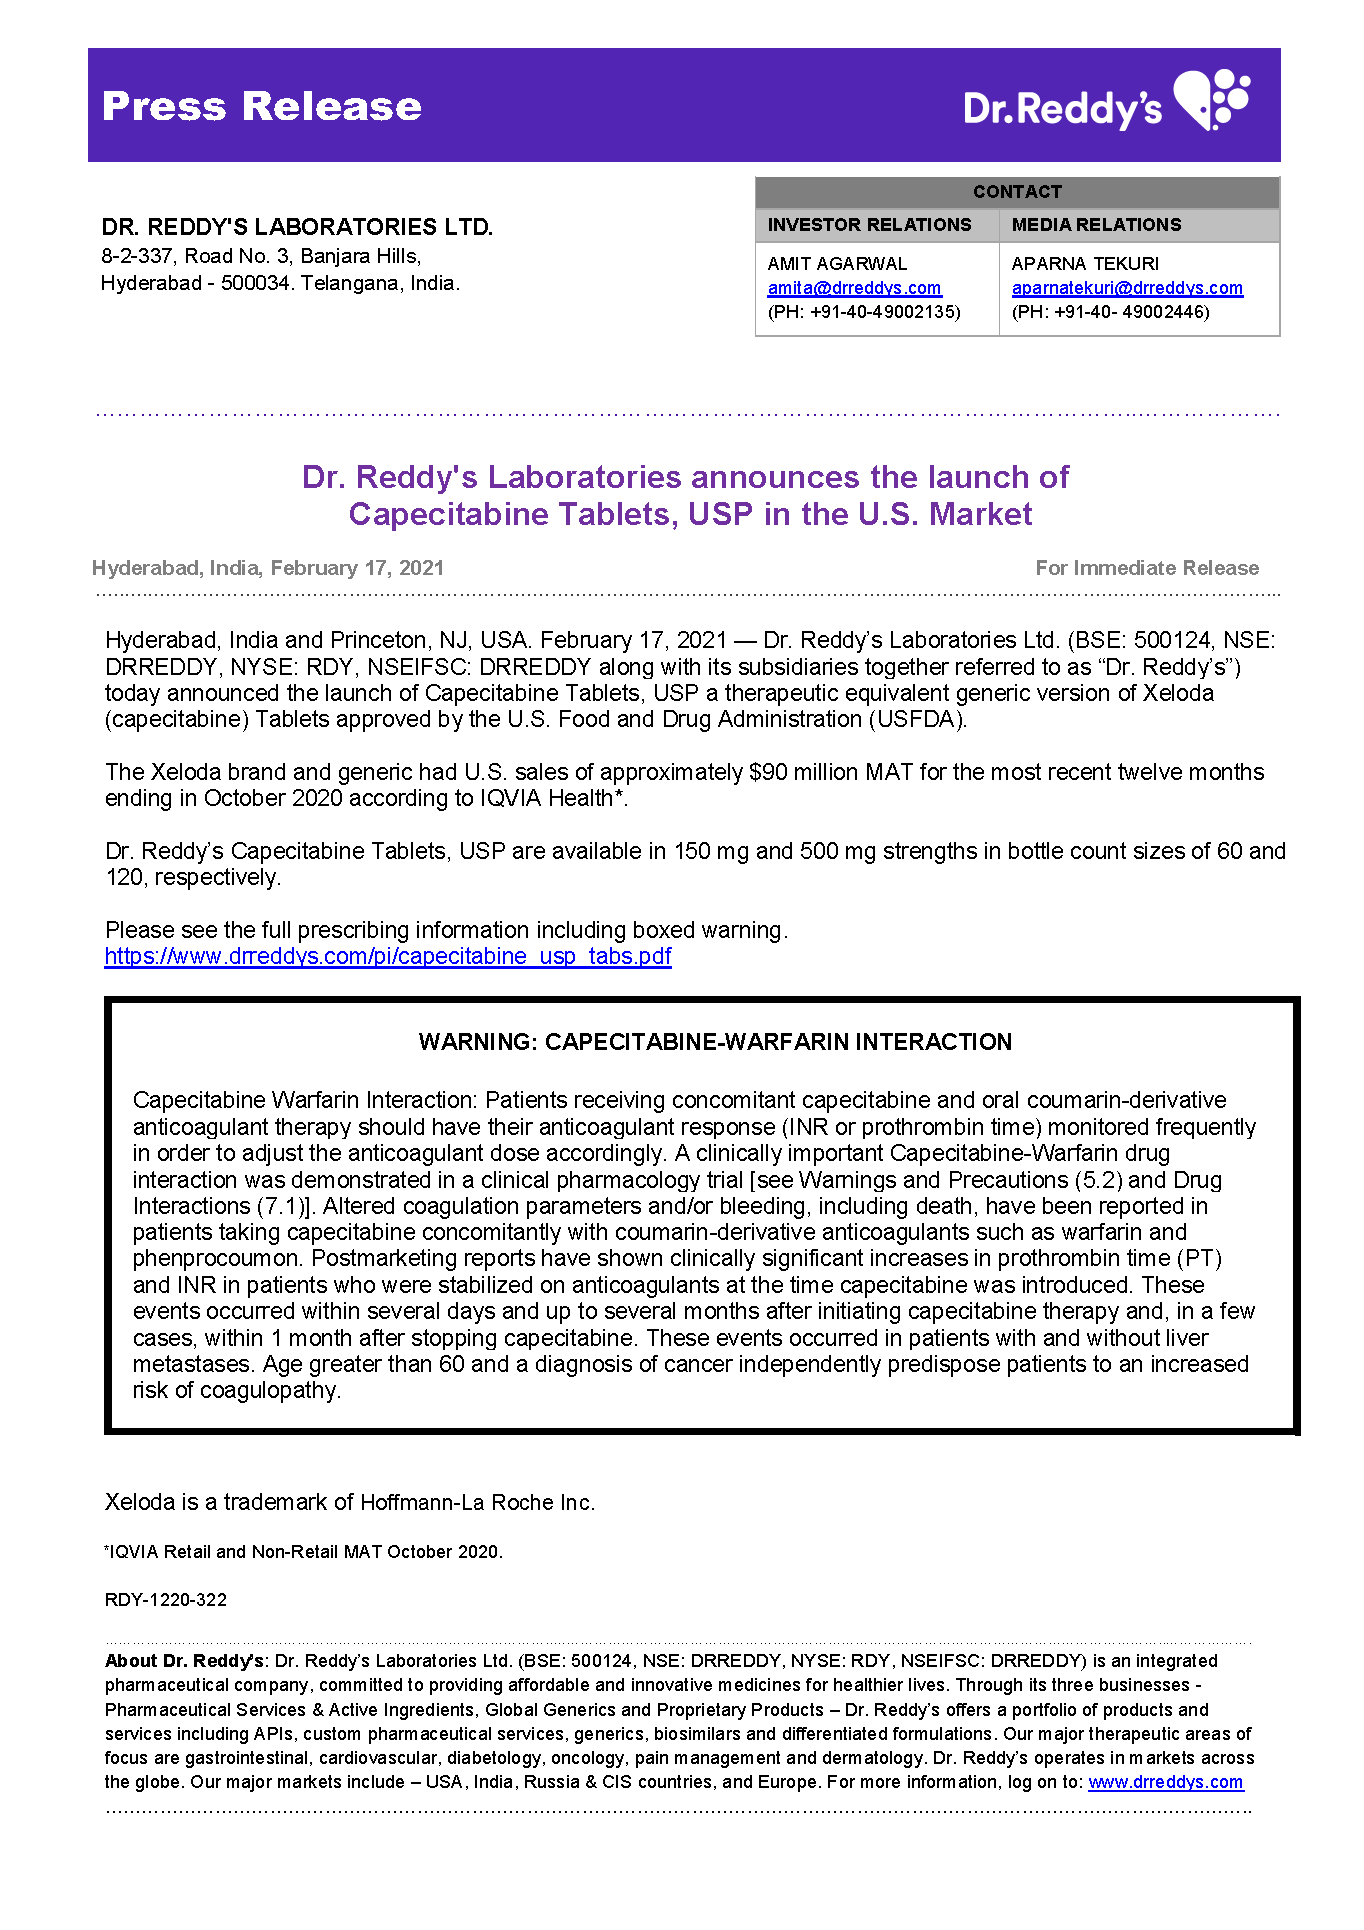 press-release_-capecitabine-gxeloda-launch-v8_Page_1.png